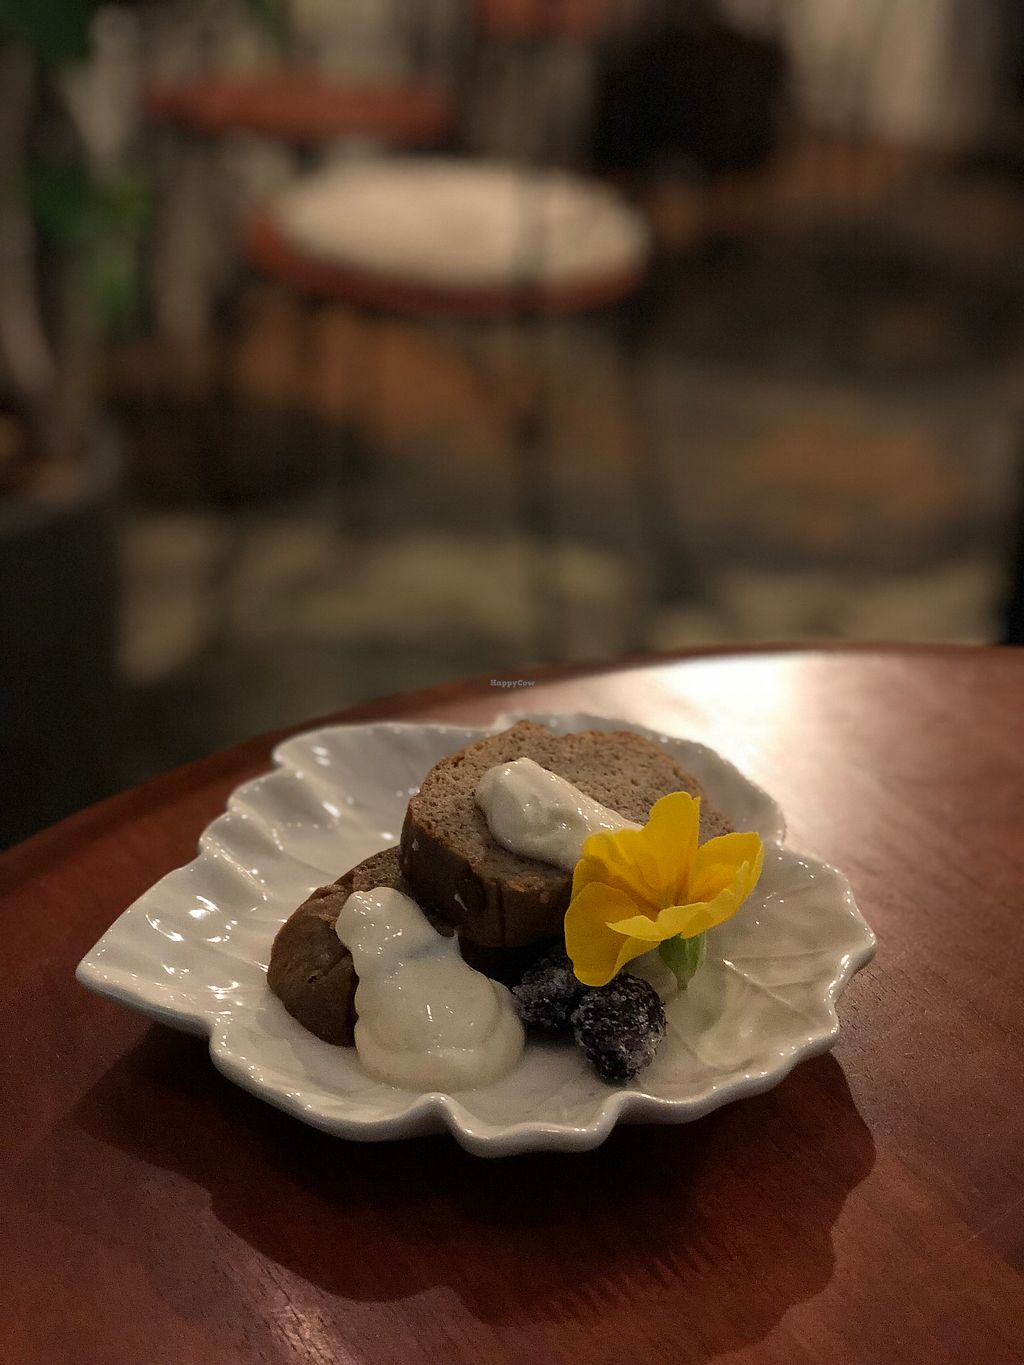 """Photo of Kururu  by <a href=""""/members/profile/SimonJohnson"""">SimonJohnson</a> <br/>Yummy moist banana cake with soy cream <br/> March 30, 2018  - <a href='/contact/abuse/image/96808/378184'>Report</a>"""